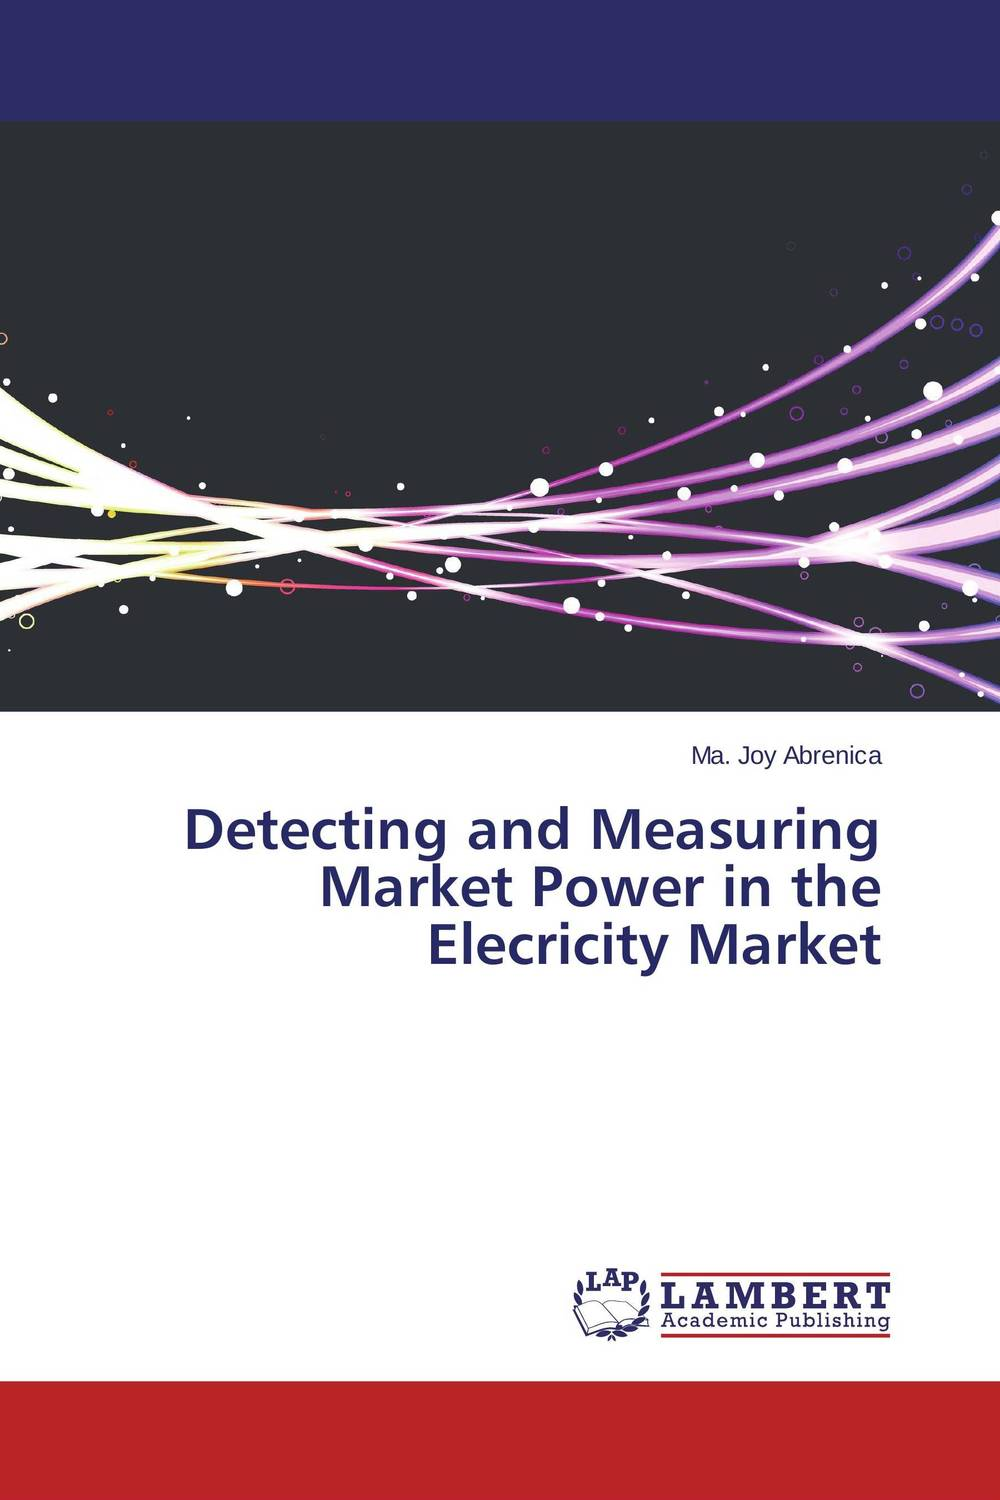 Detecting and Measuring Market Power in the Elecricity Market collusion